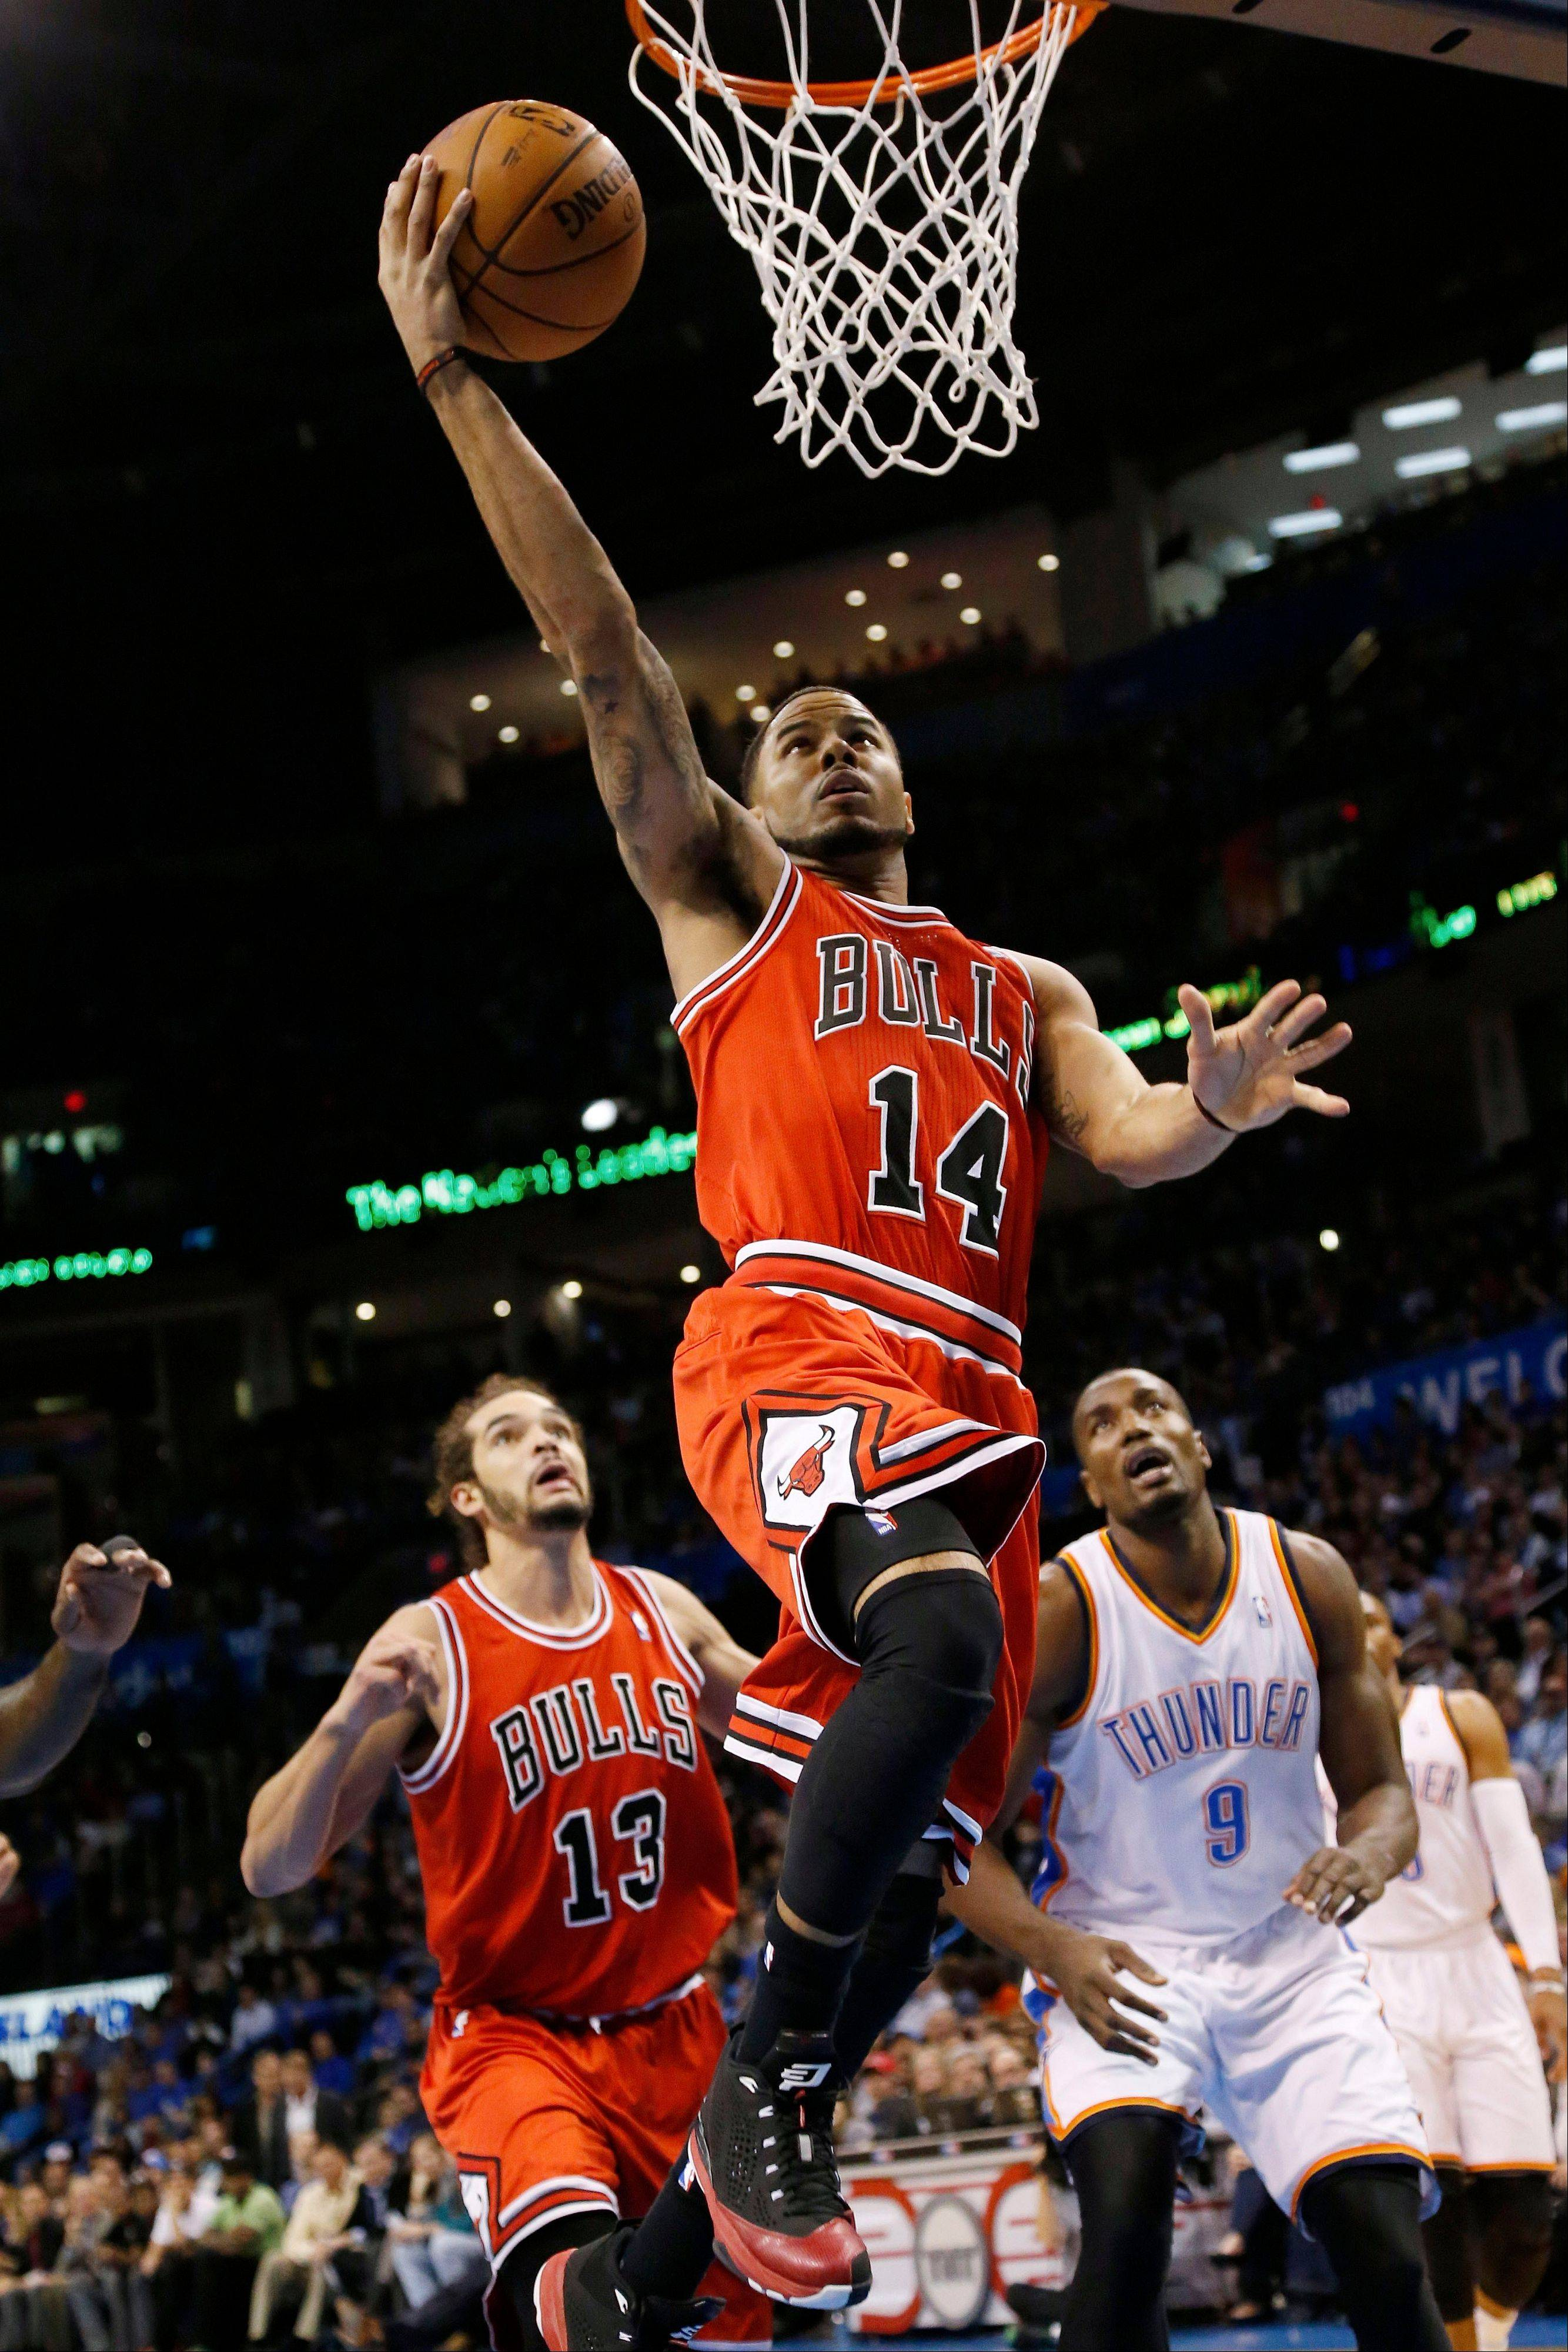 Bulls' Hinrich more than happy to get some help